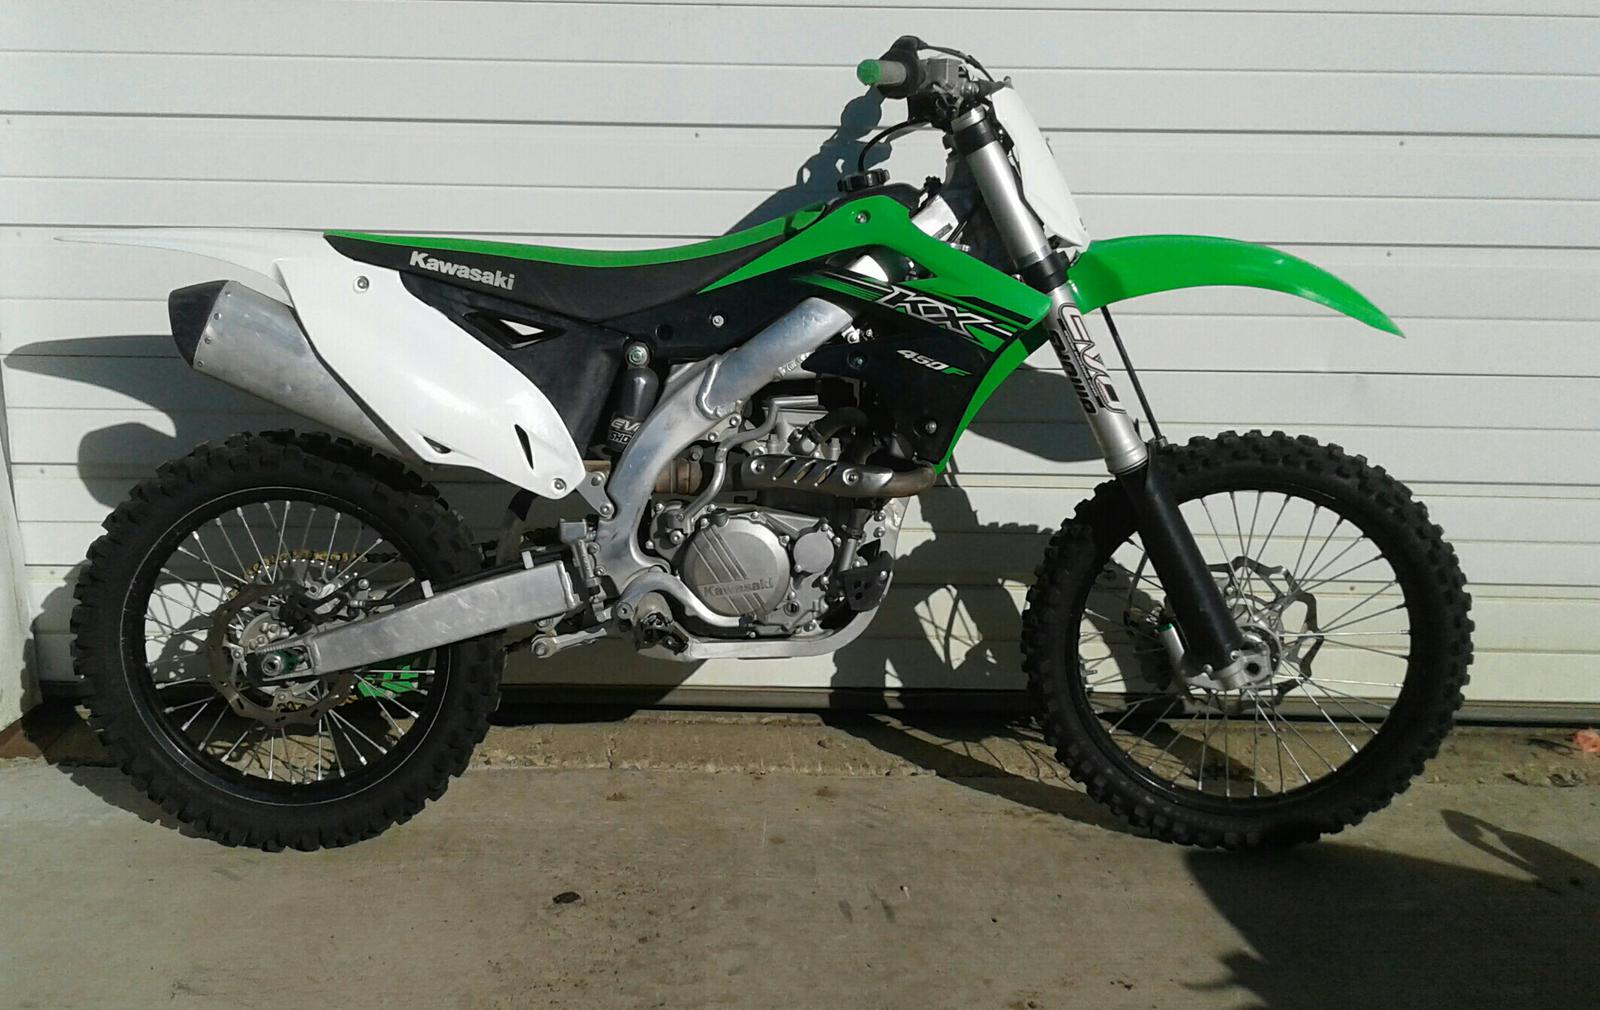 Swell Dirt Bikes From Kawasaki Interlakes Sport Center Llc Madison Gamerscity Chair Design For Home Gamerscityorg